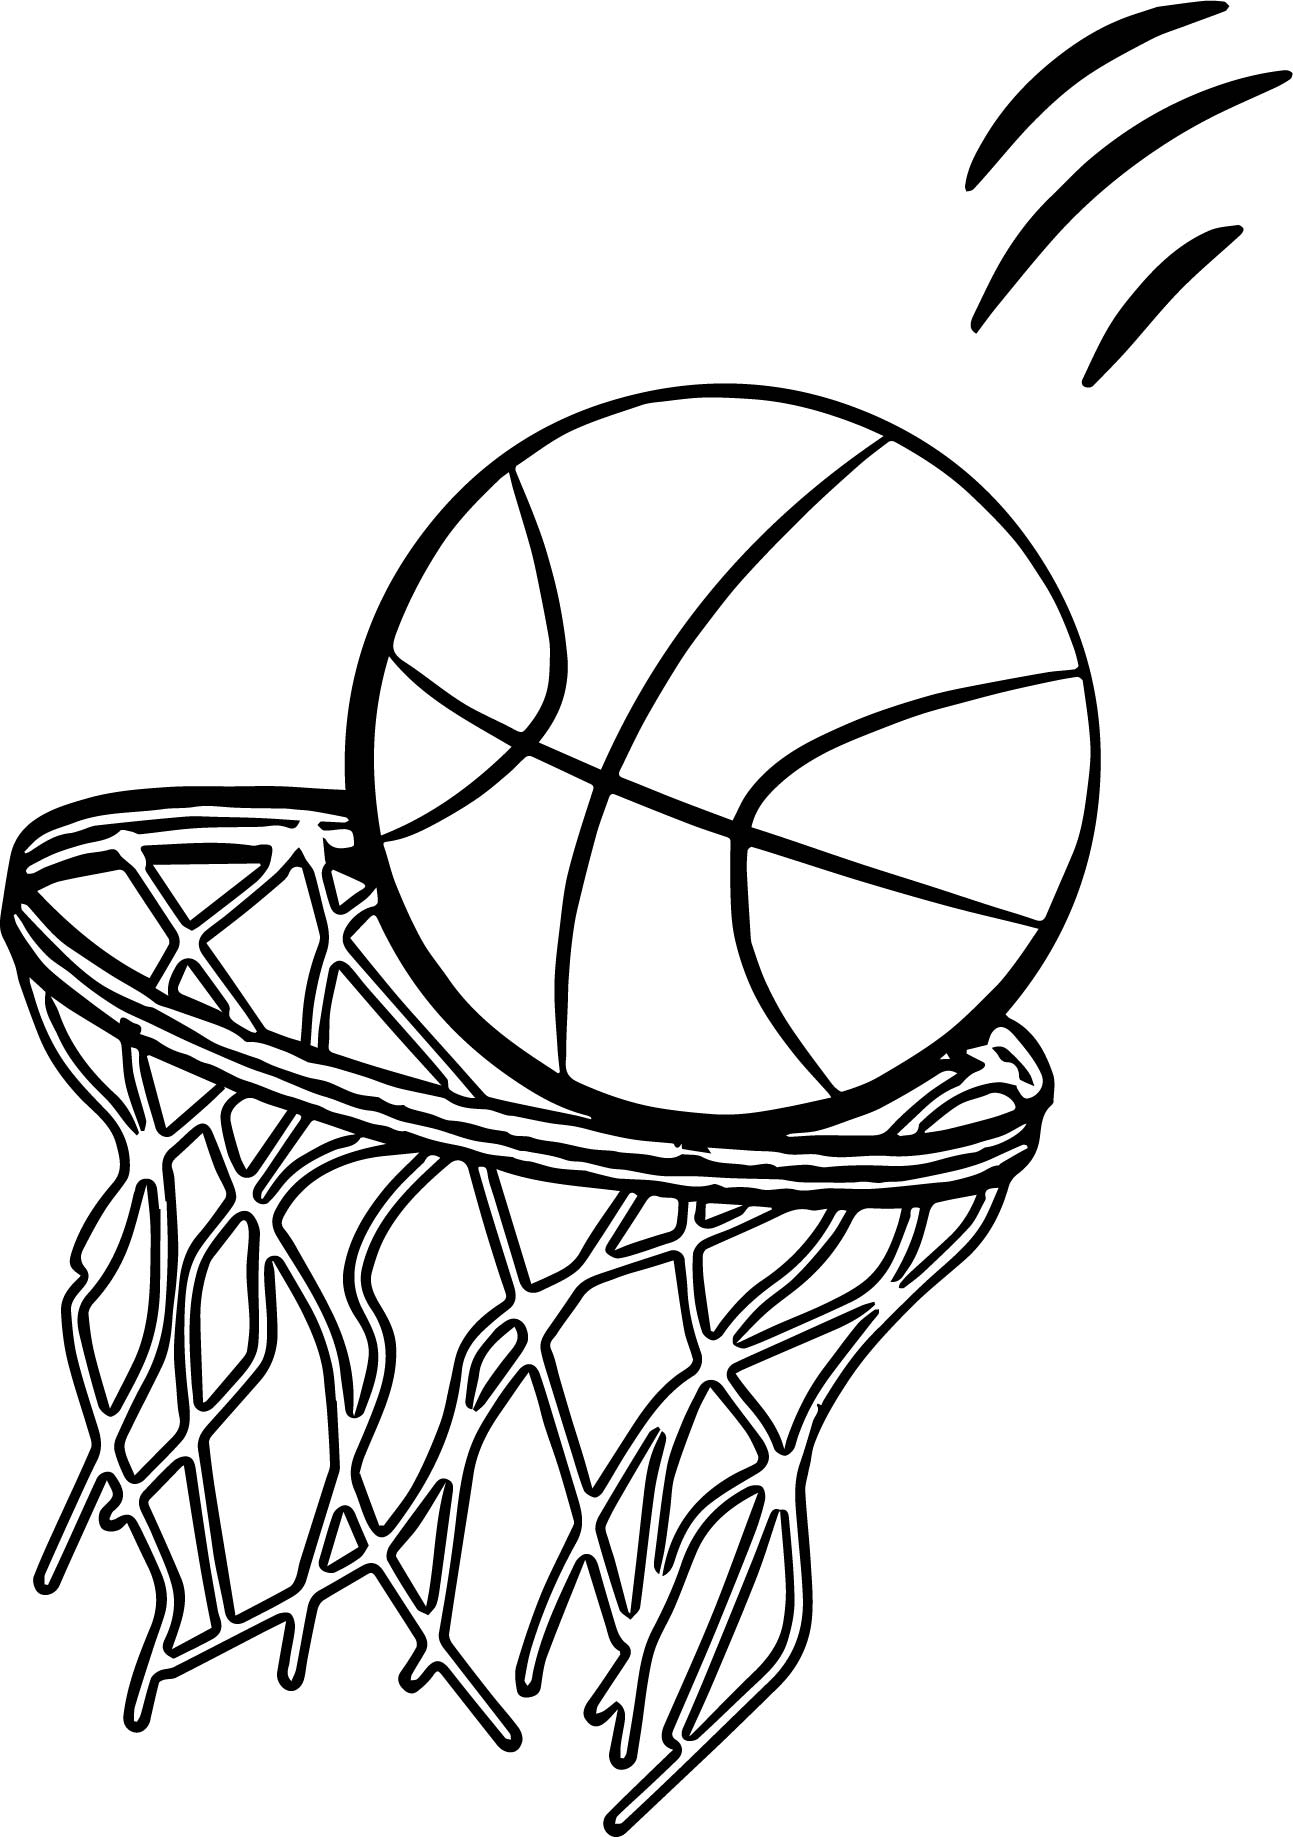 1293x1837 Going Basketball Ball Playing Basketball Coloring Page